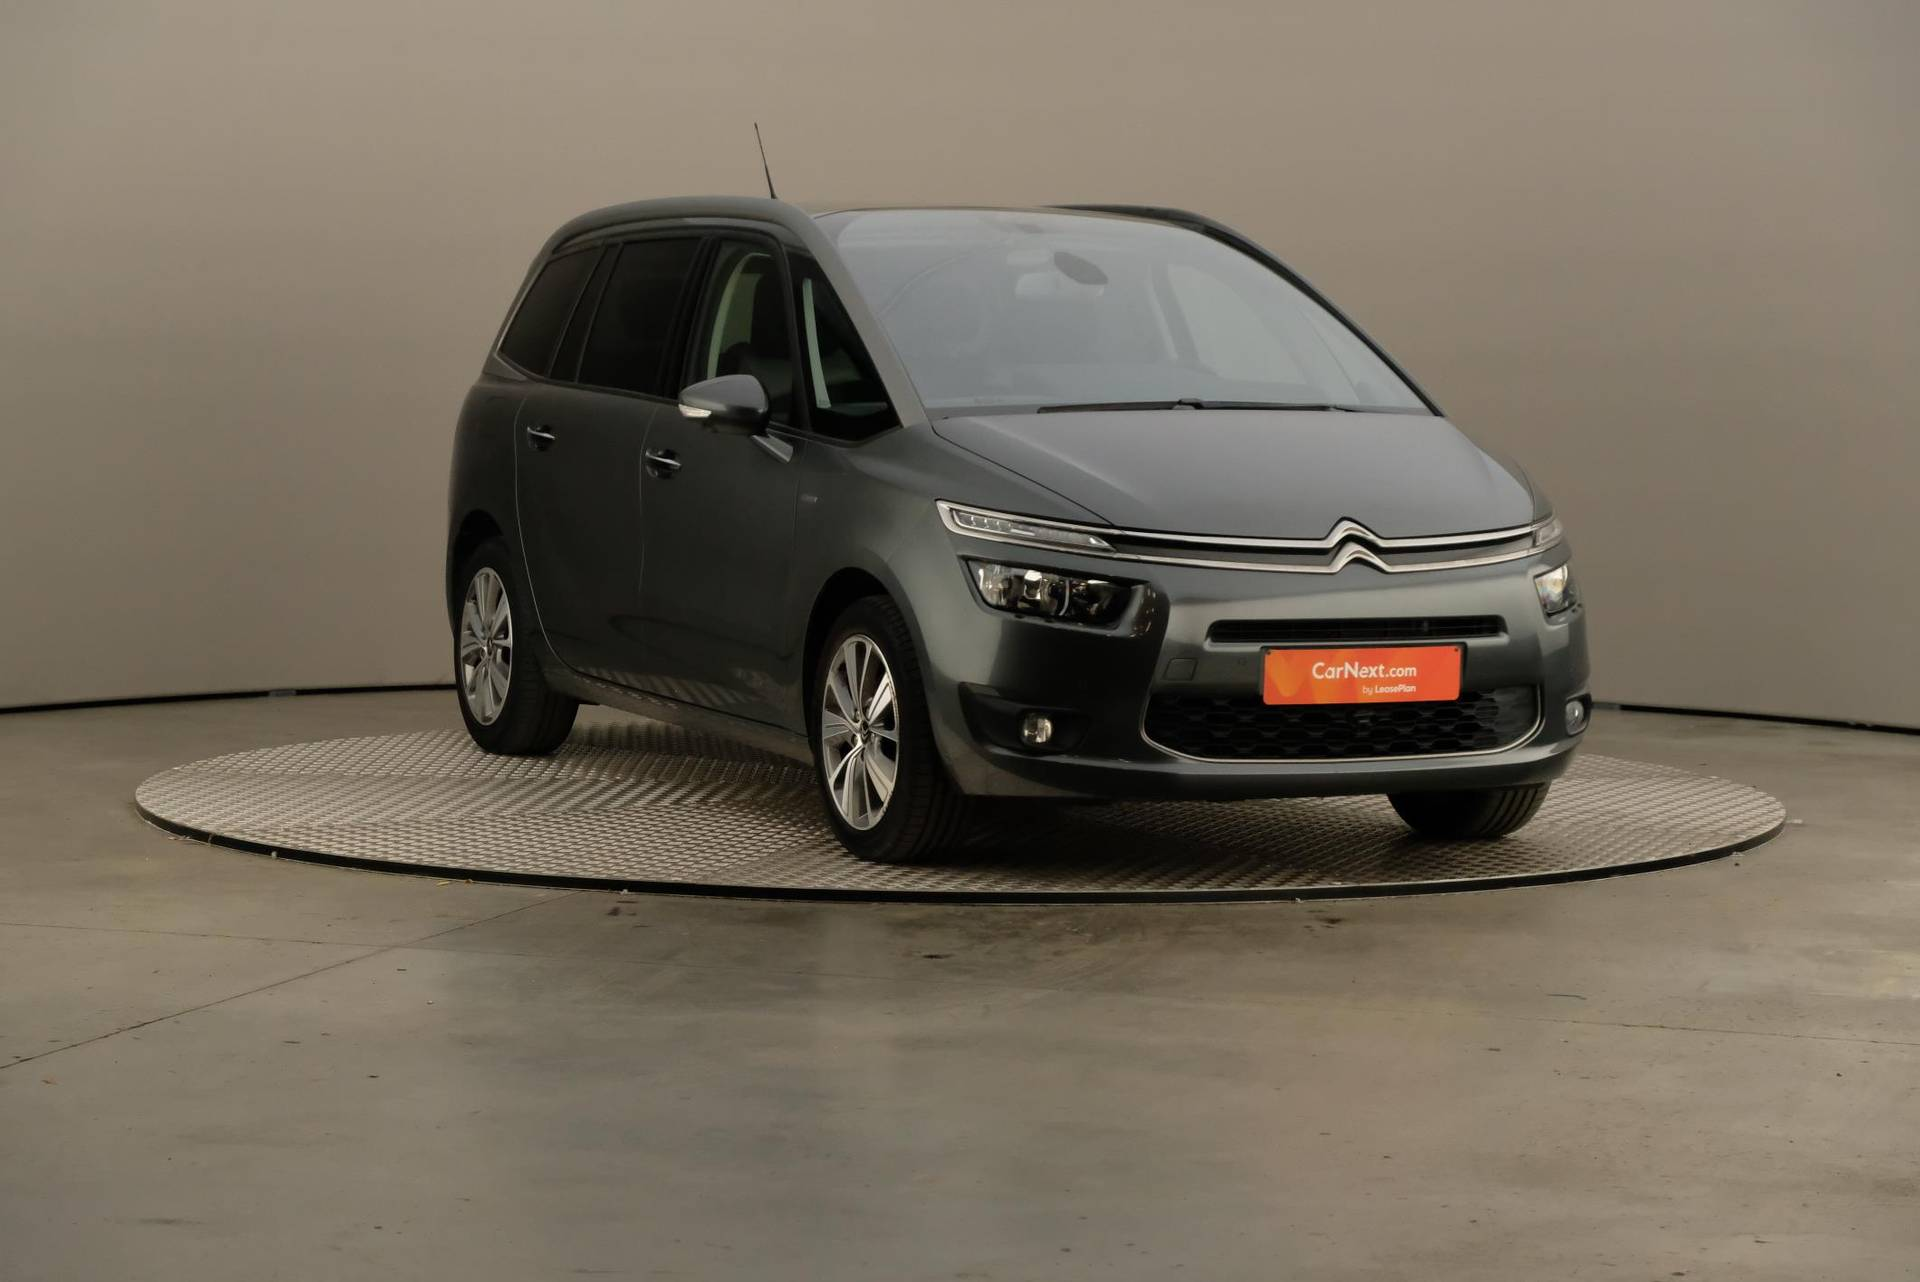 Citroën C4 Picasso e-HDi 115 ETG6, Attraction 7pl. PANO SOUND SYST. GPS CAMERA TREKHAAK..., 360-image29